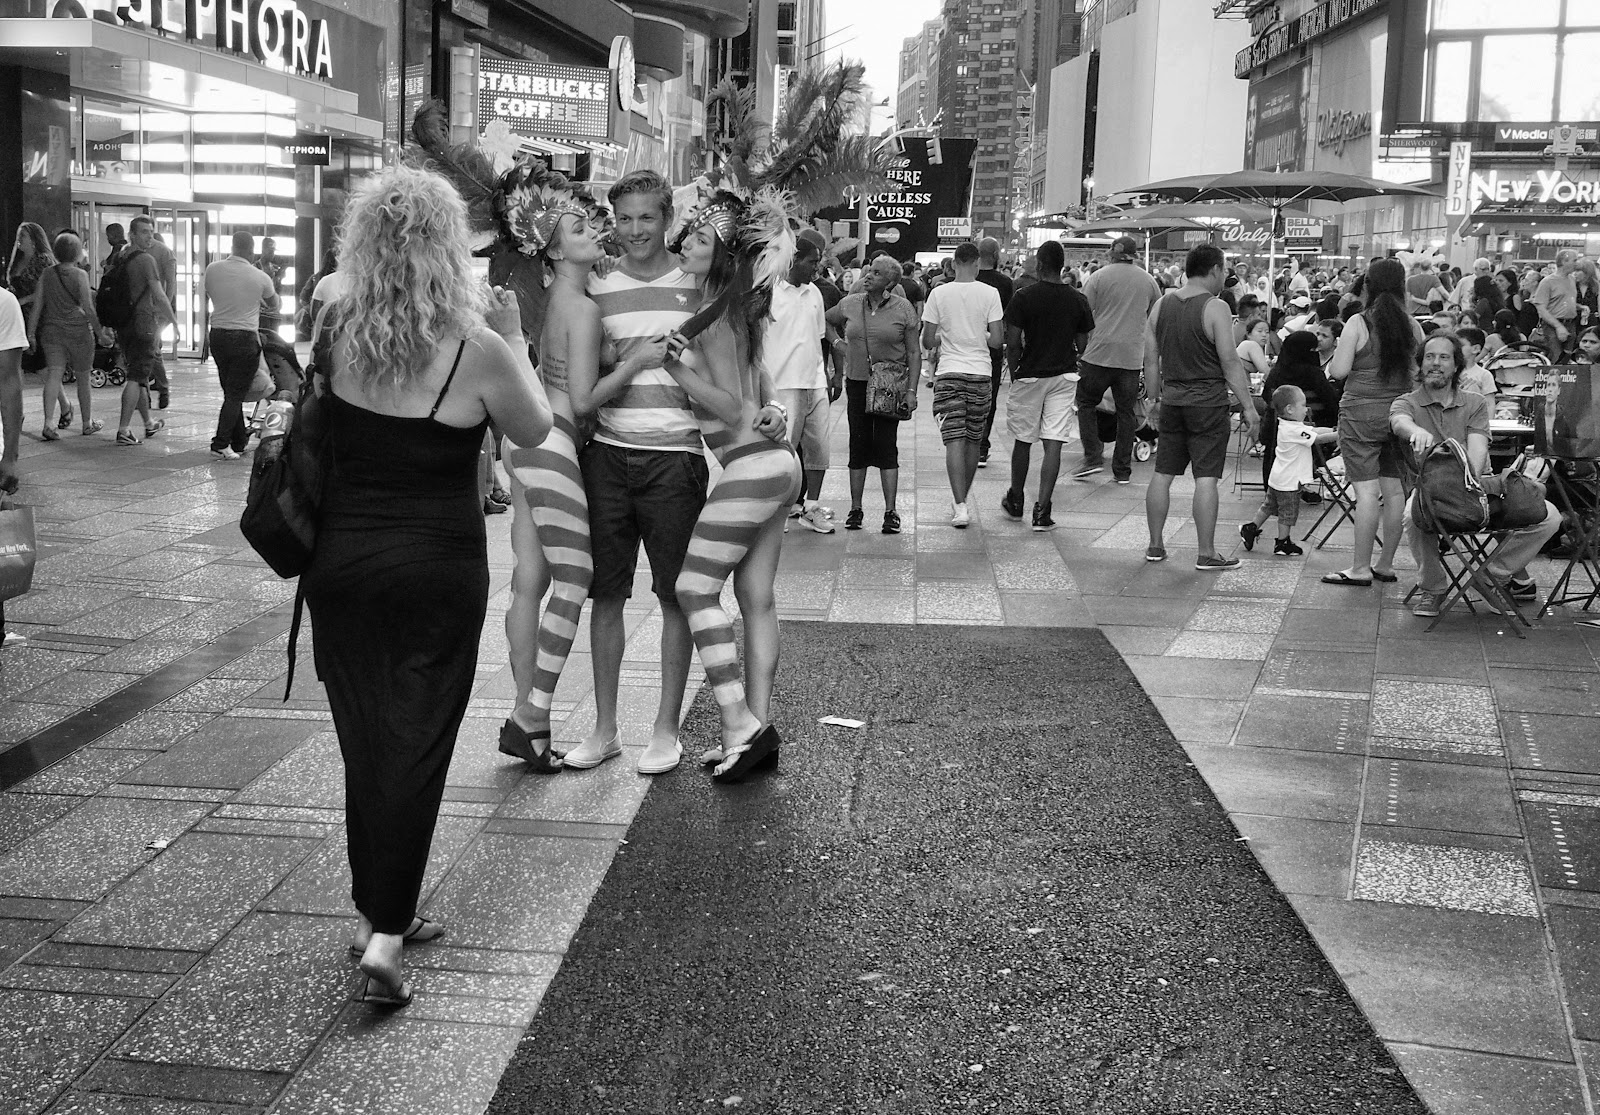 Body Paint #bodypaint #timessquare #nyc #americanflag #streetperformer #street  #BW #blackandwhite #B&W 2013